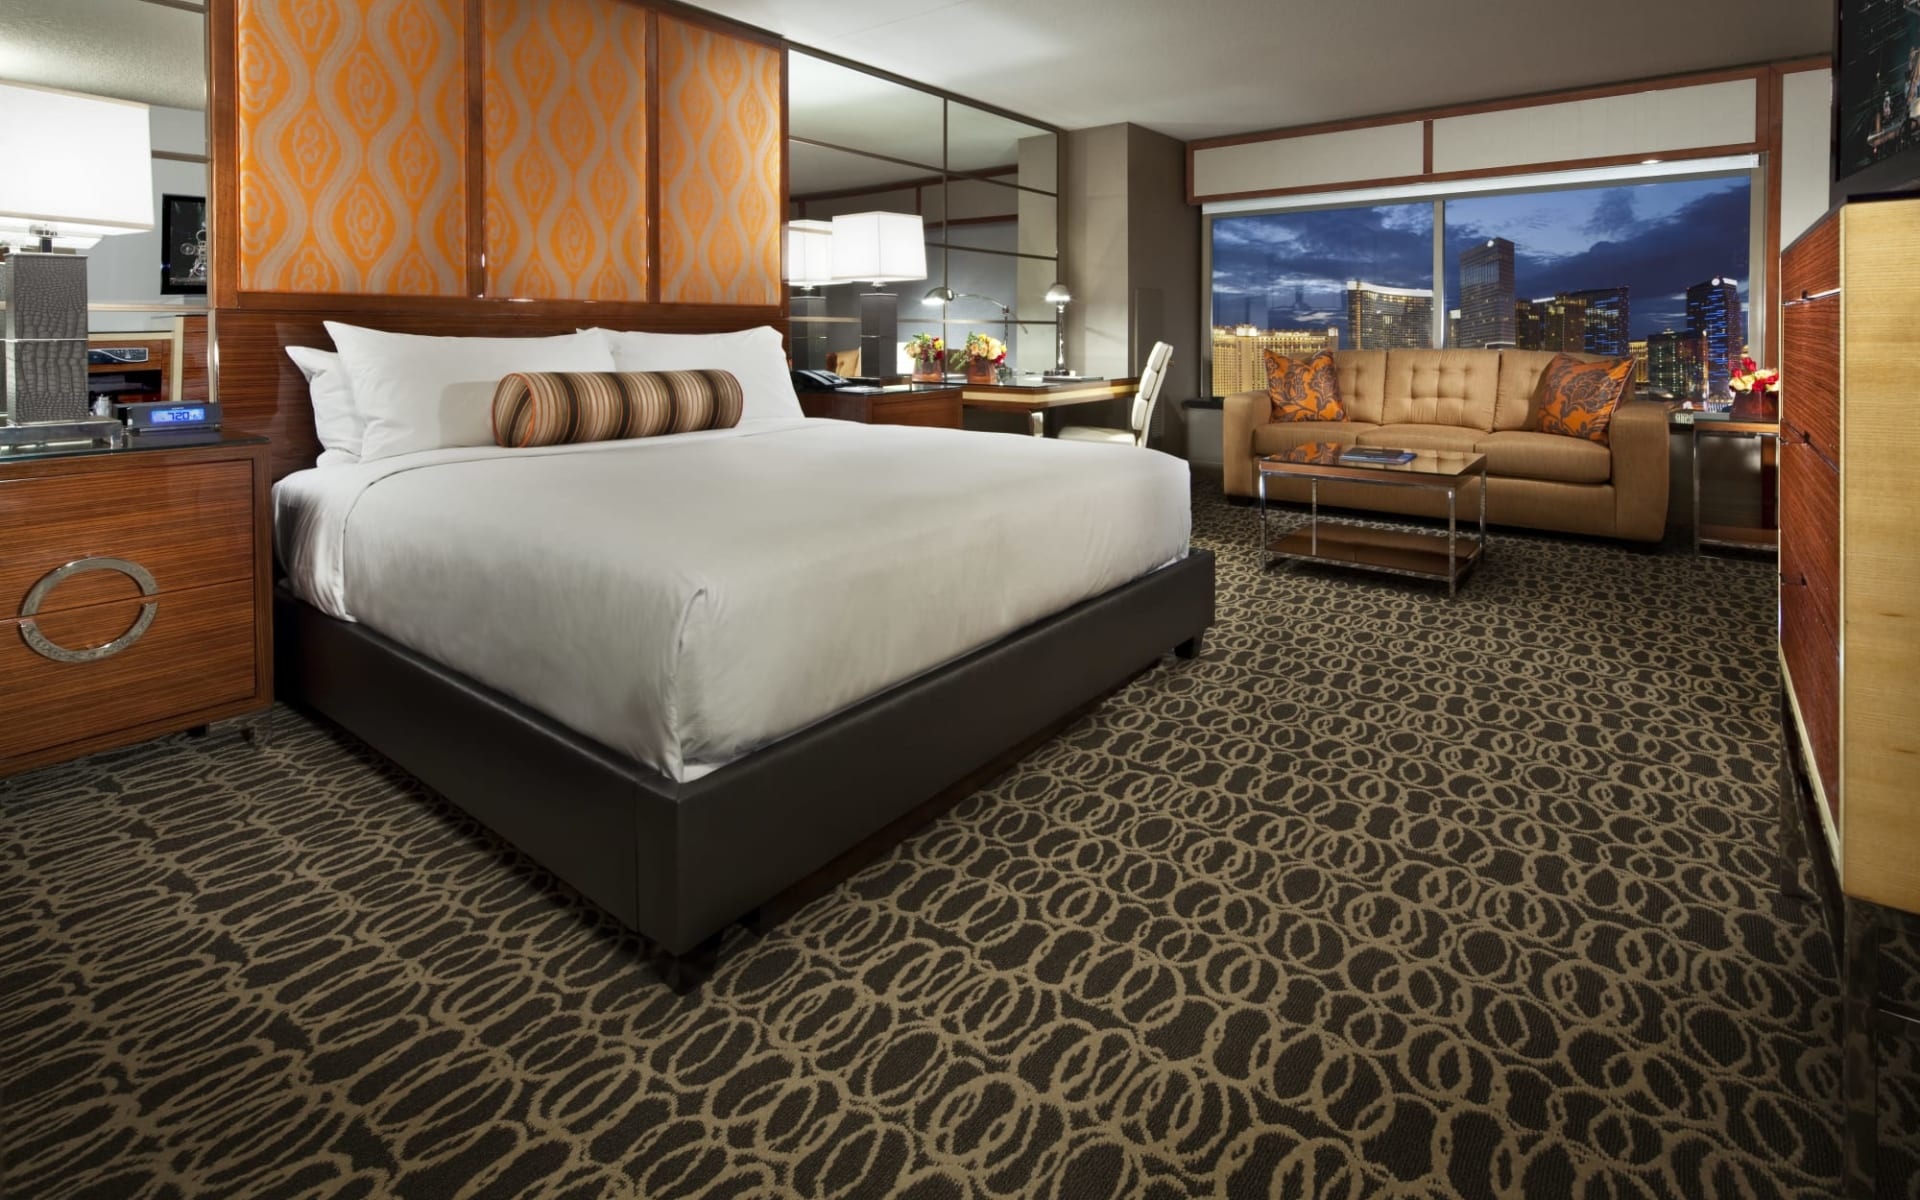 MGM Grand Hotel in Las Vegas:  MGM Grand - Grand Room